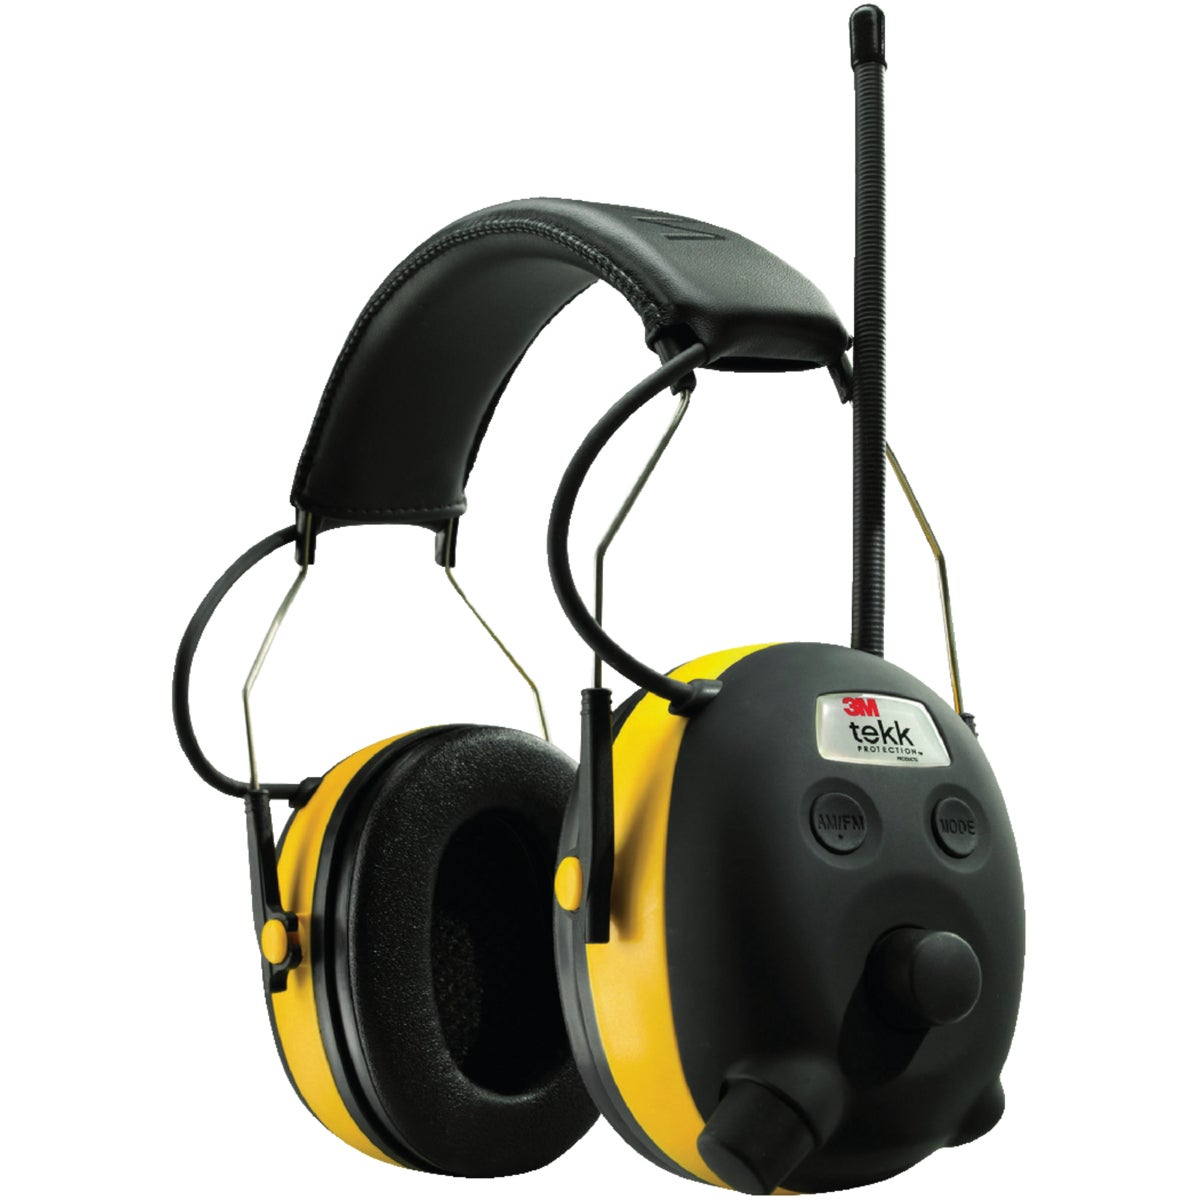 3M STEREO HEARING PROTECTOR 90541-80025